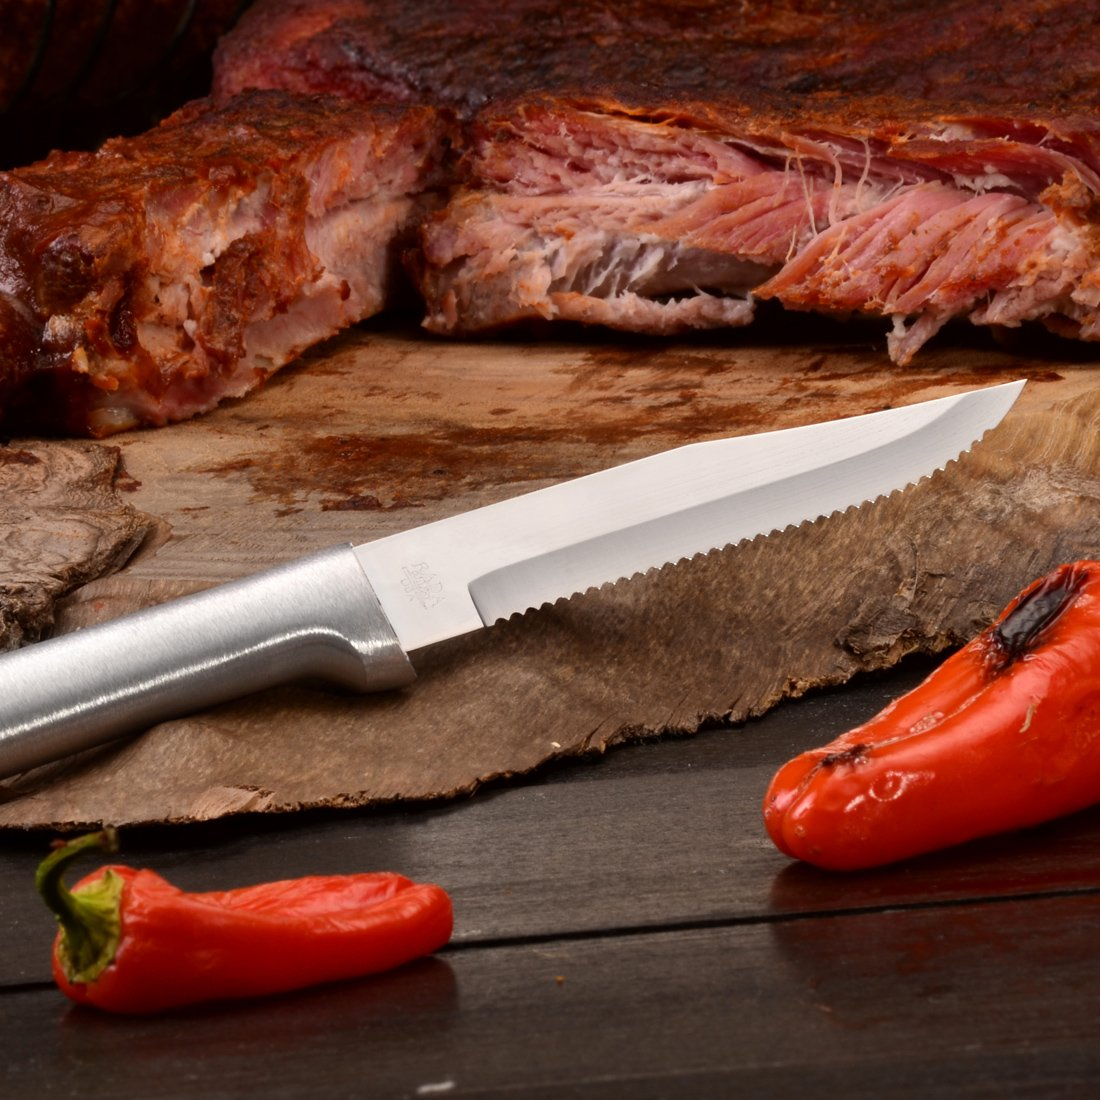 Rada Cutlery Serrated Steak Knife Set - Stainless Steel Knives With Aluminum Handles, Set of 6 by Rada Cutlery (Image #5)